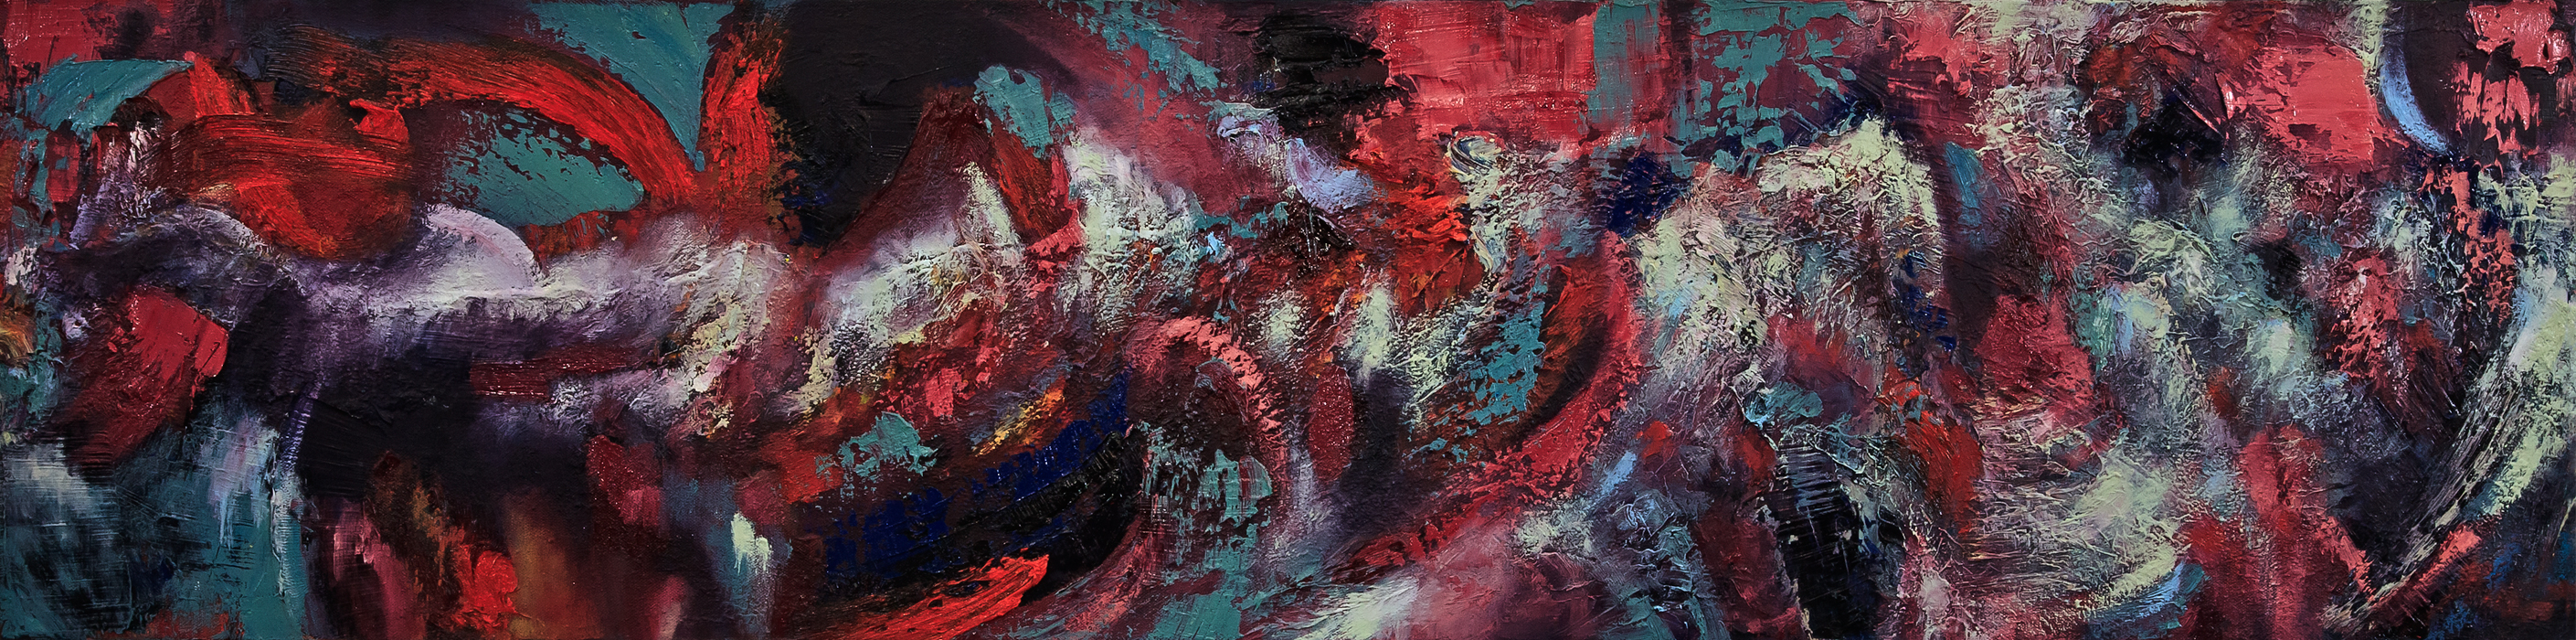 "Crashing Winter (2016-2018), Oil and Mixed Media on Canvas, 12"" x 48"""